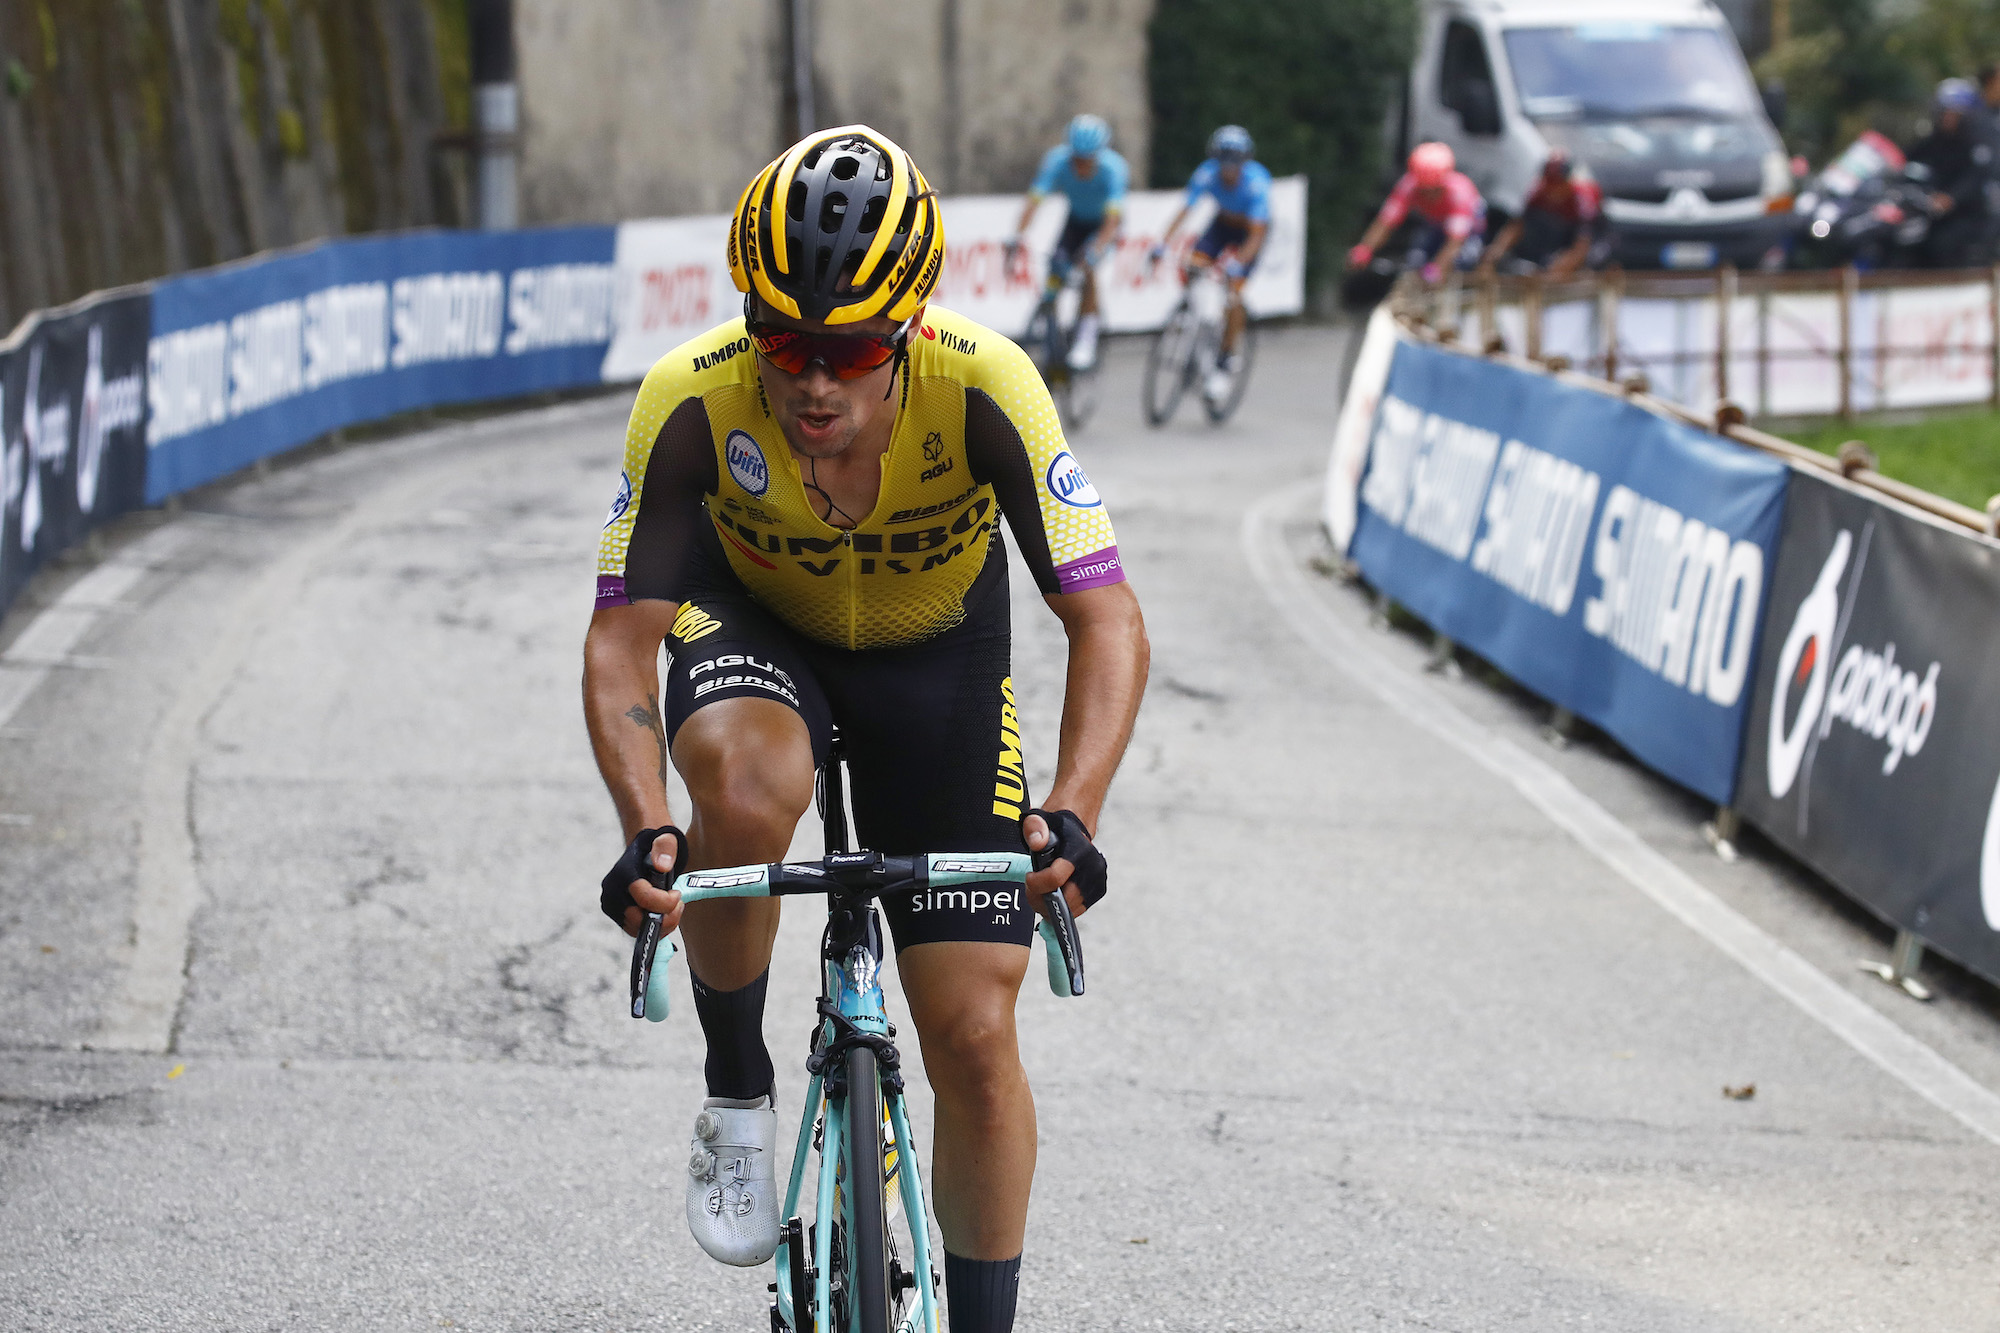 Primoz Roglic S Most Successful Season Sees Him Ranked Number One Rider In The World Cycling Weekly